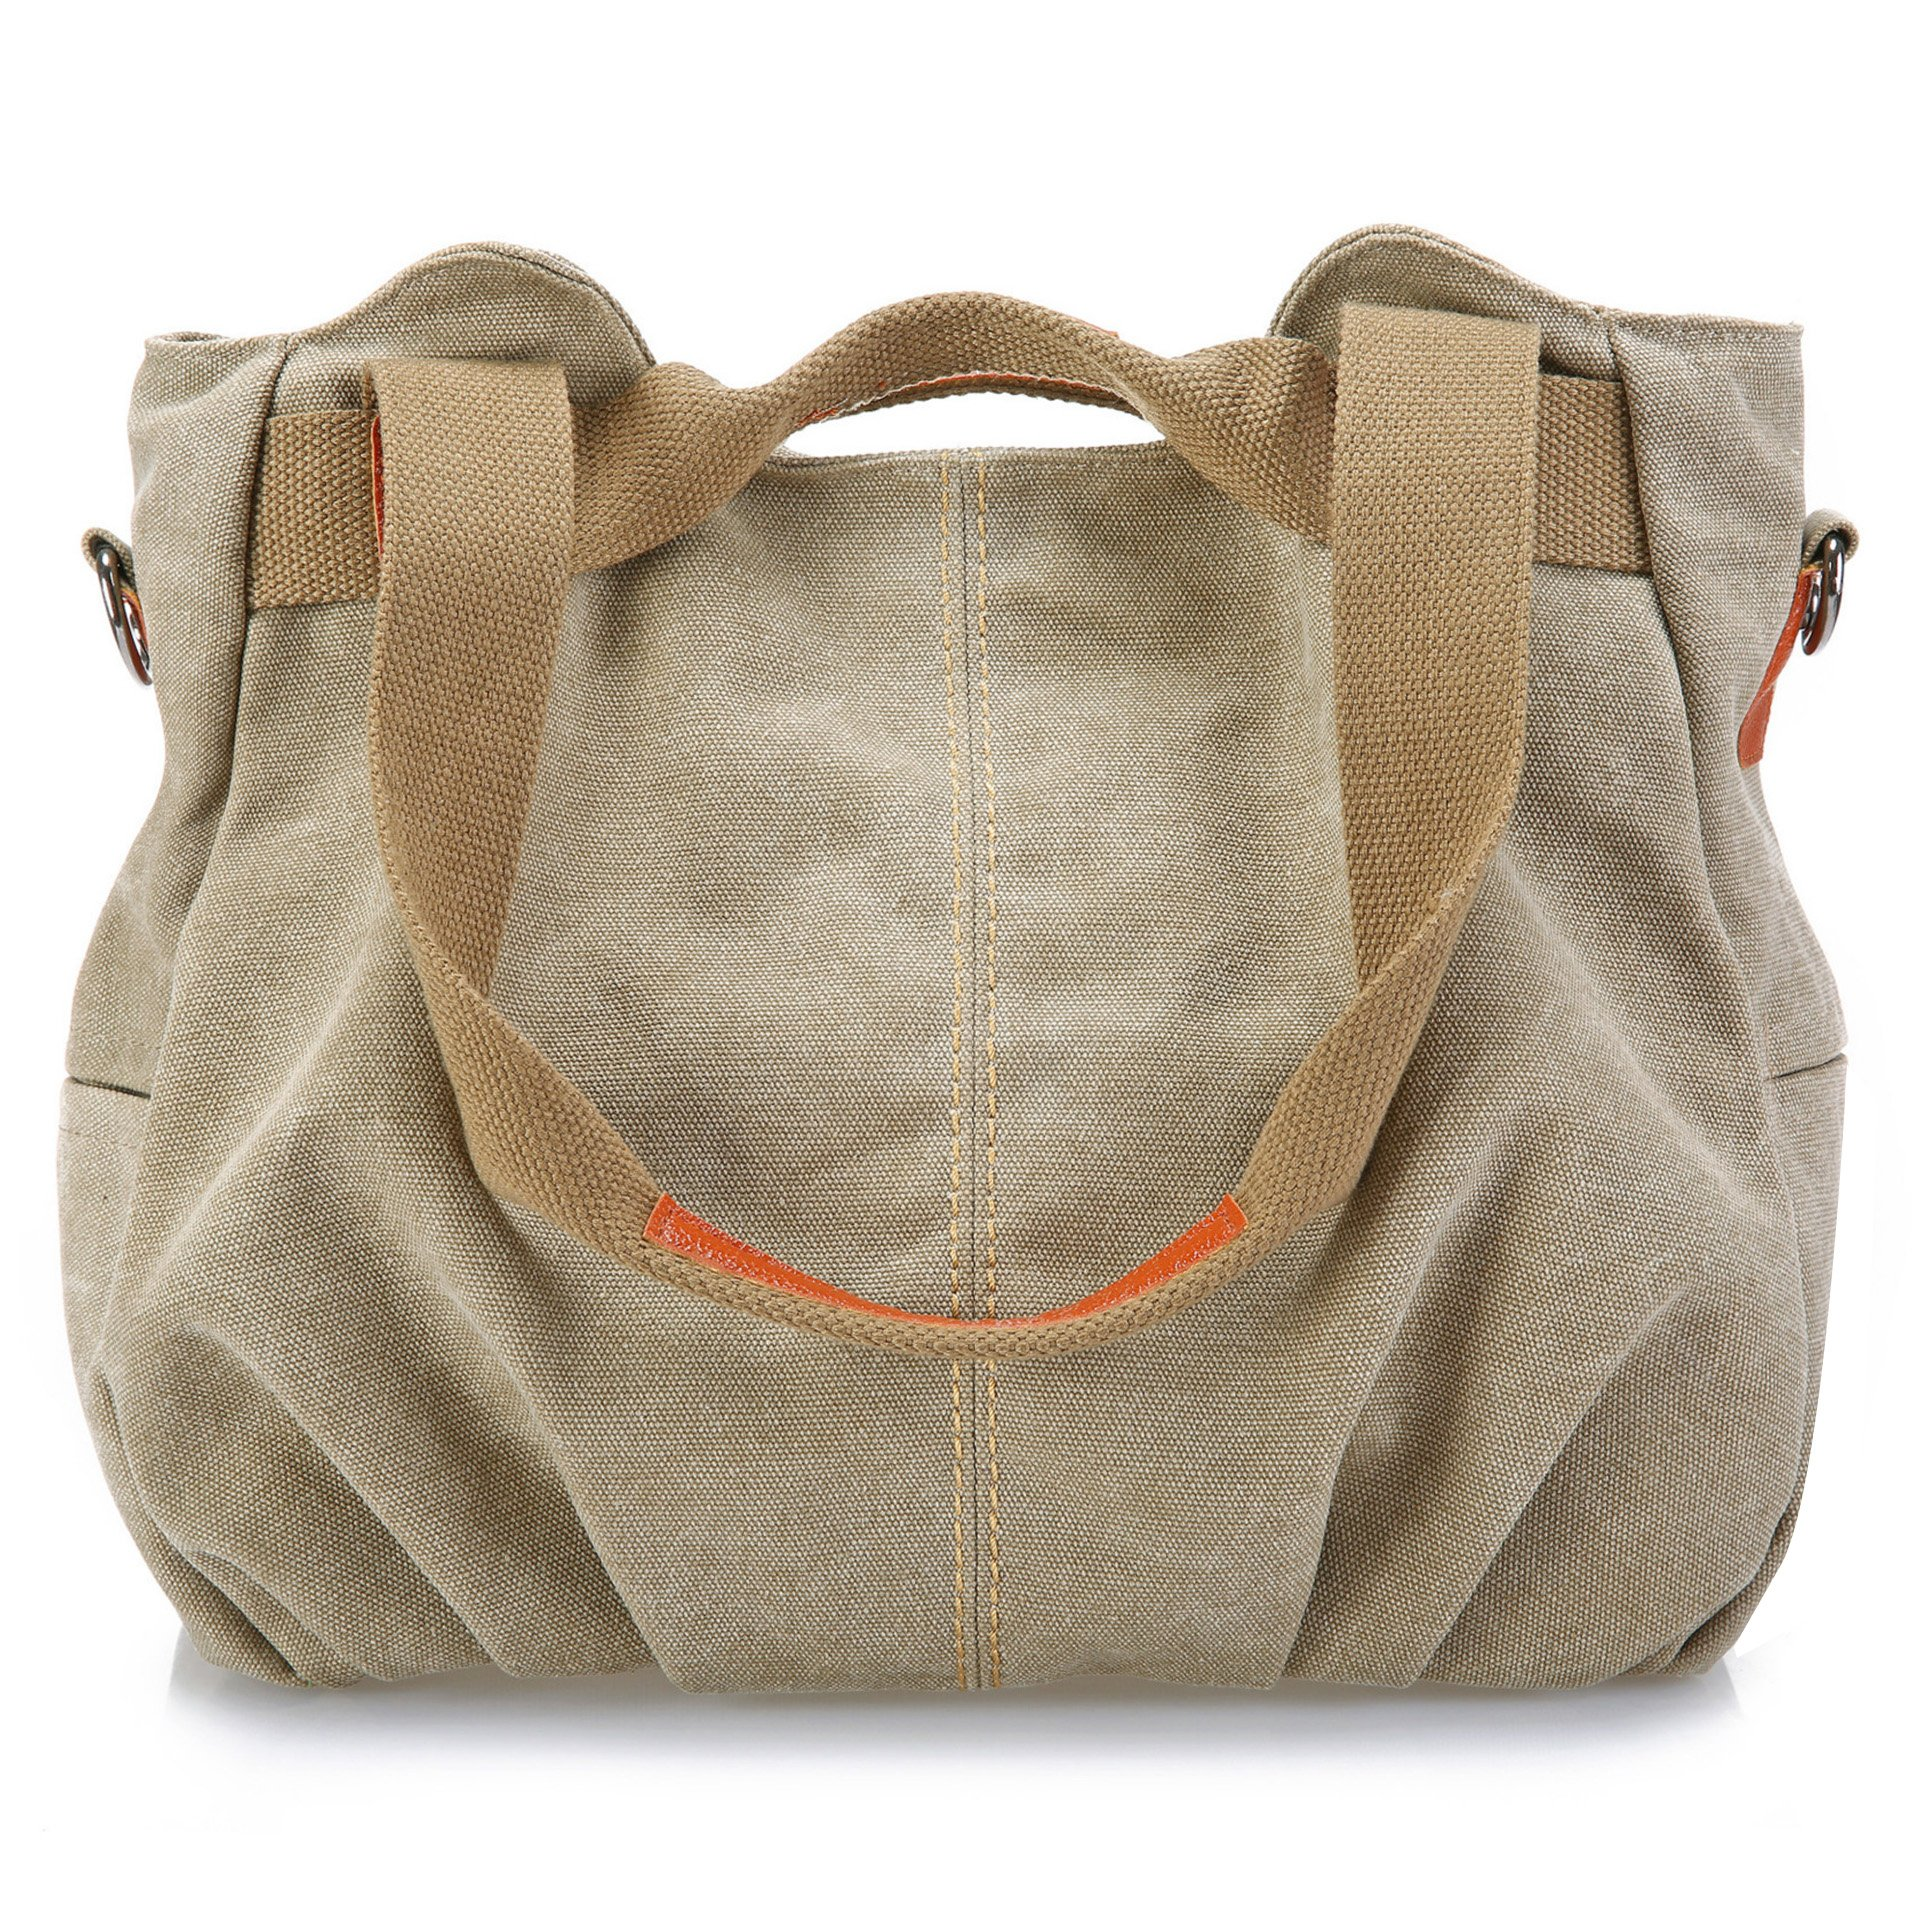 Z-joyee Women's Ladies Casual Vintage Hobo Canvas Daily Purse Top Handle Shoulder Tote Shopper Handbag Satchel Bag, Khaki